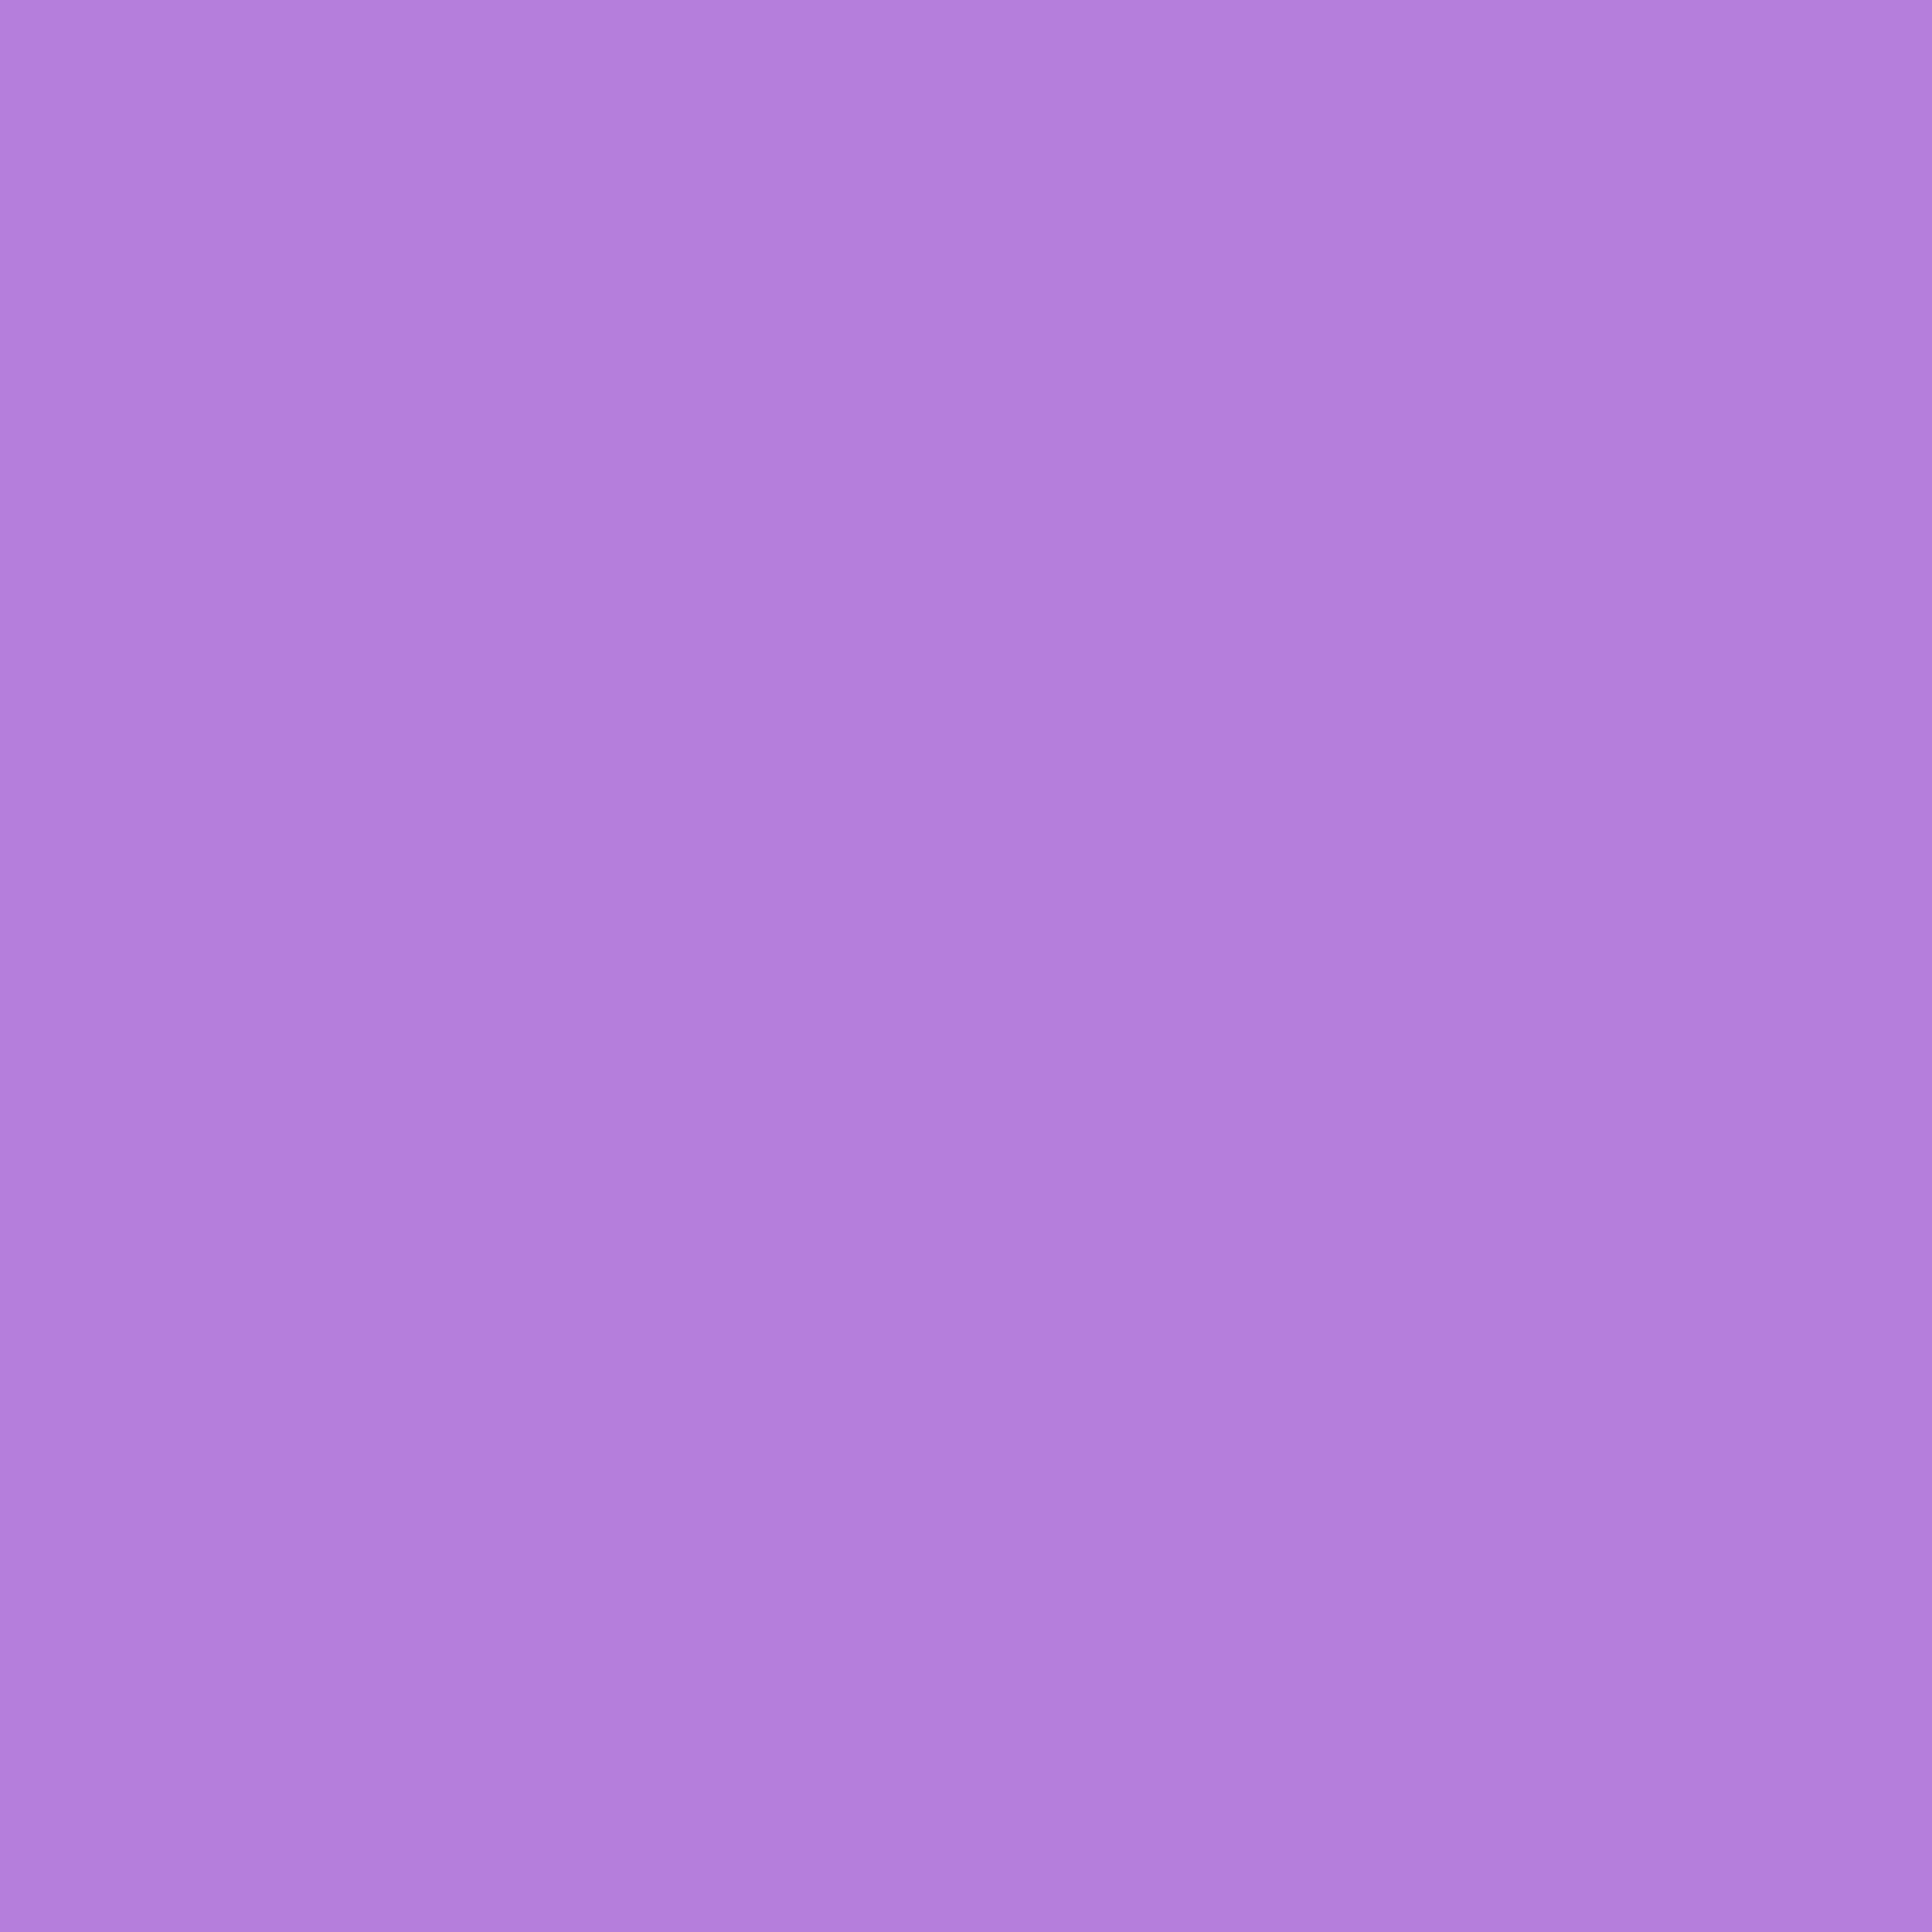 2732x2732 Lavender Floral Solid Color Background